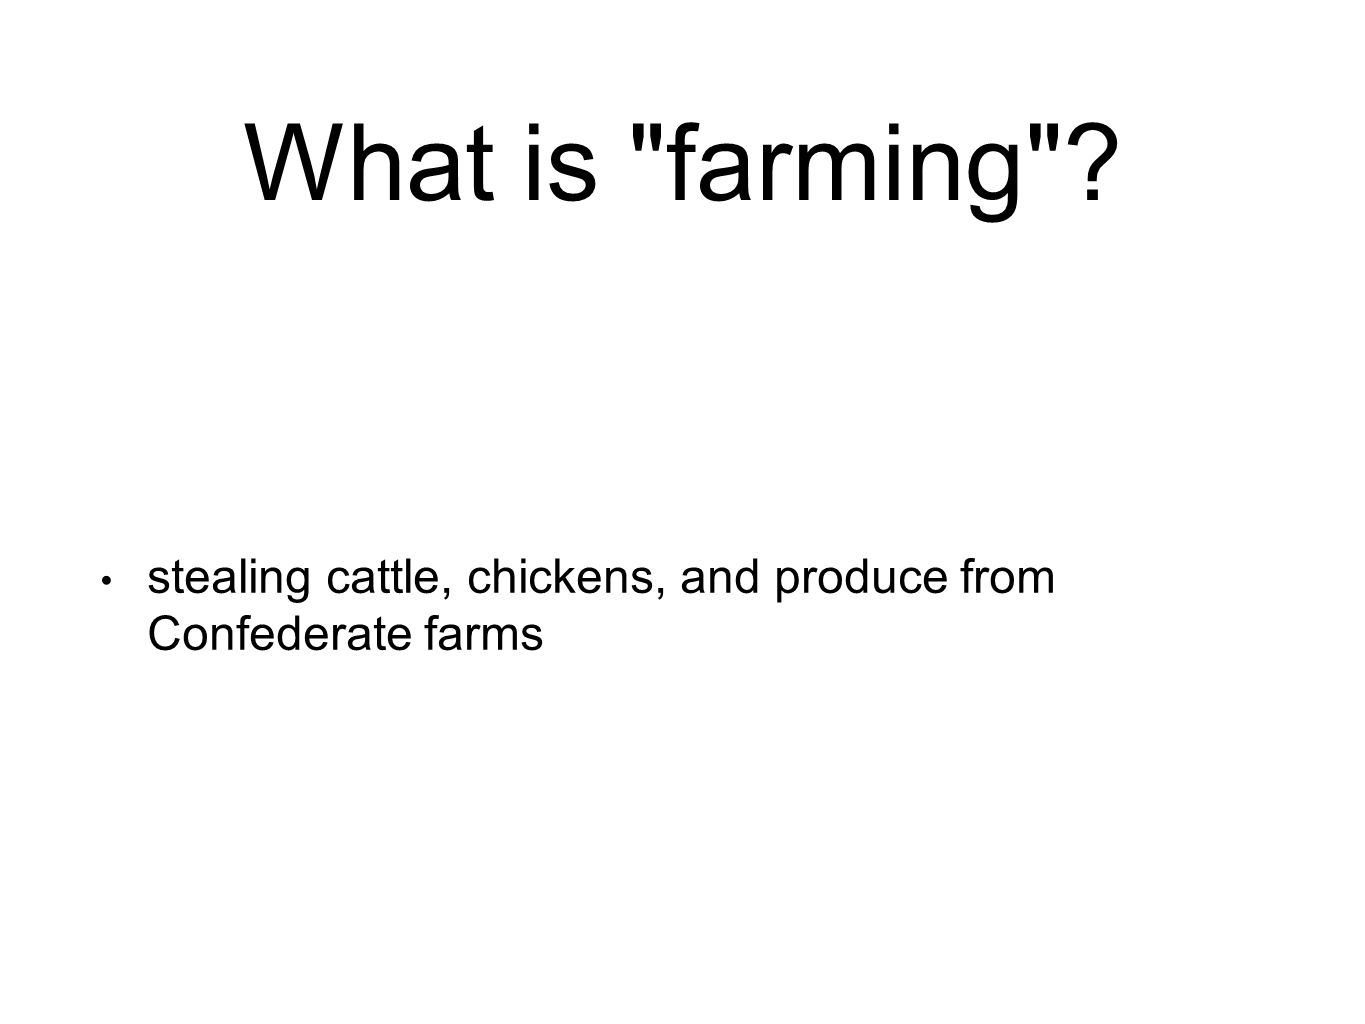 What is farming stealing cattle, chickens, and produce from Confederate farms